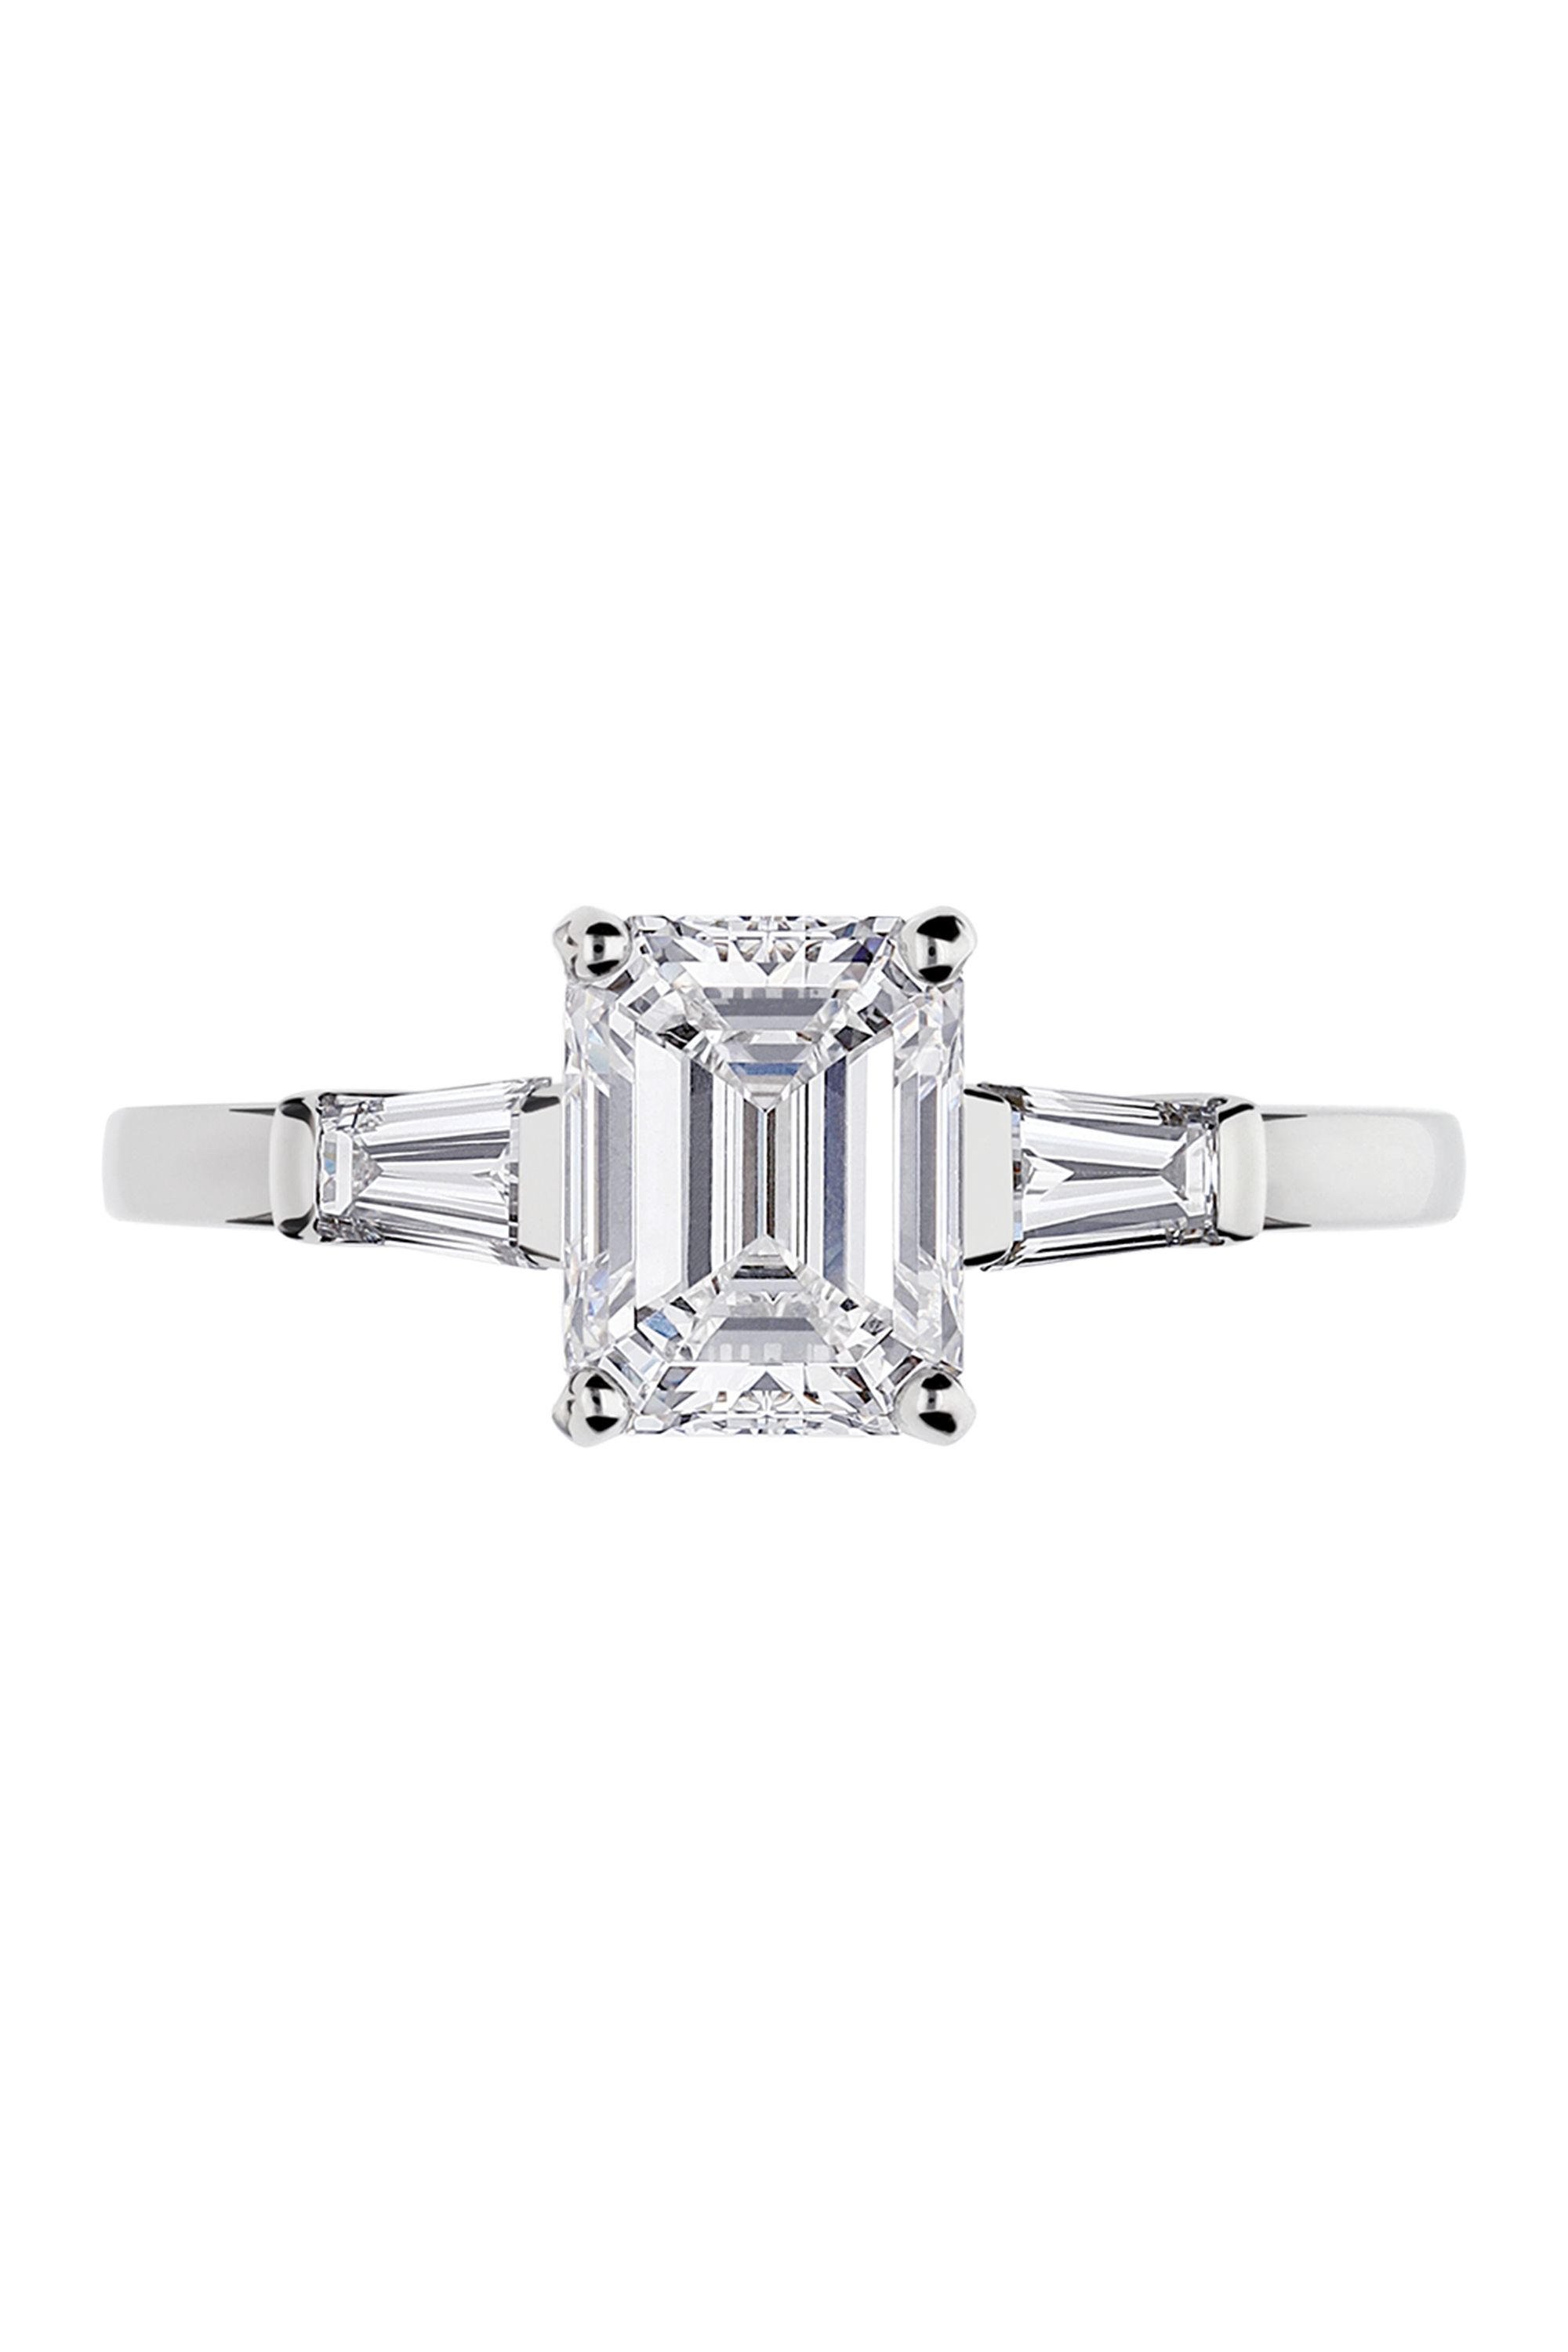 bc9015d236951 Our guide to the best engagement rings - designer and classic ...